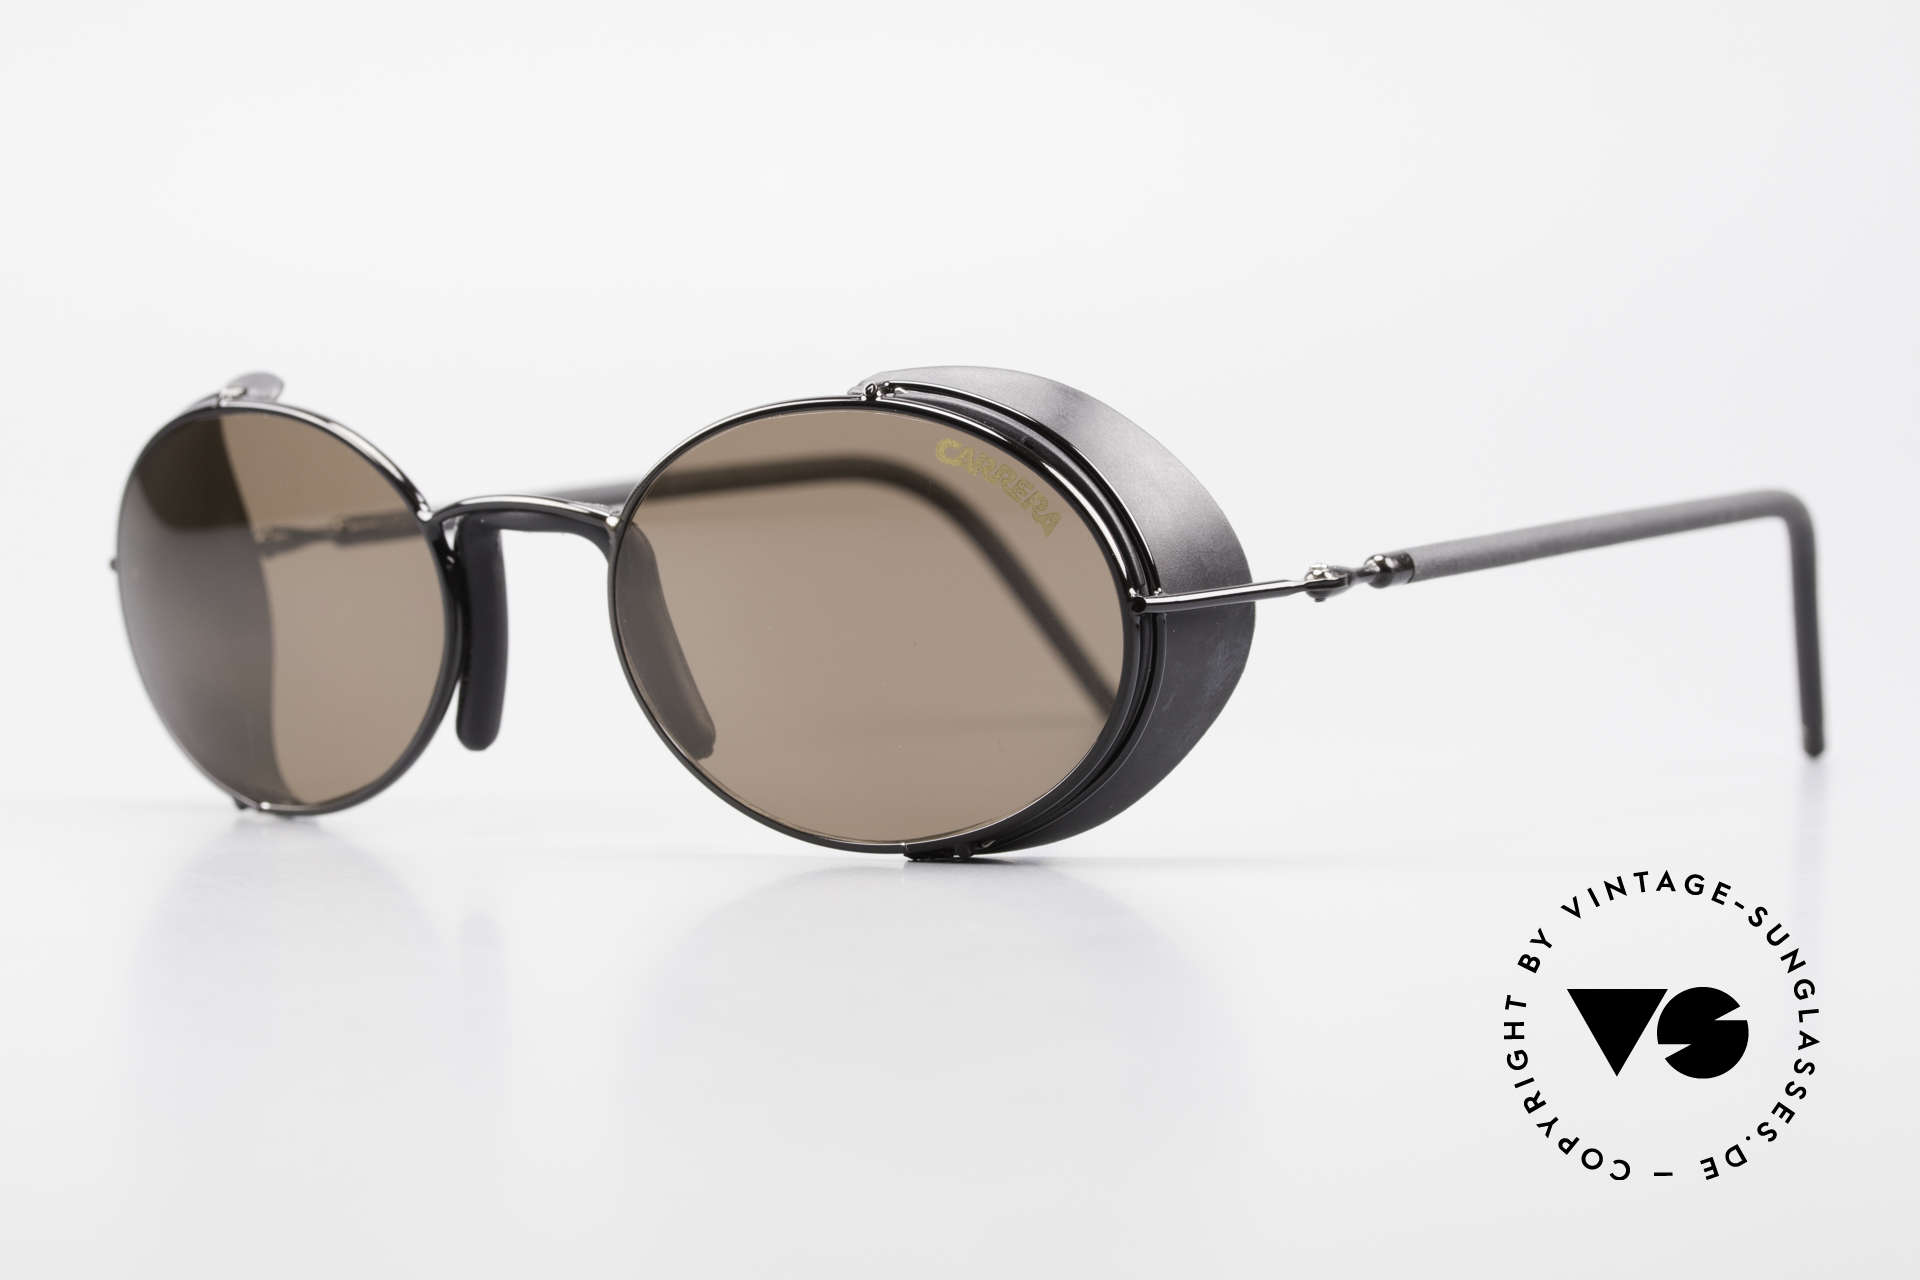 Carrera 5580 Sportsglasses Steampunk 90's, called as 'steampunk sunglasses' or 'industrial design', Made for Men and Women